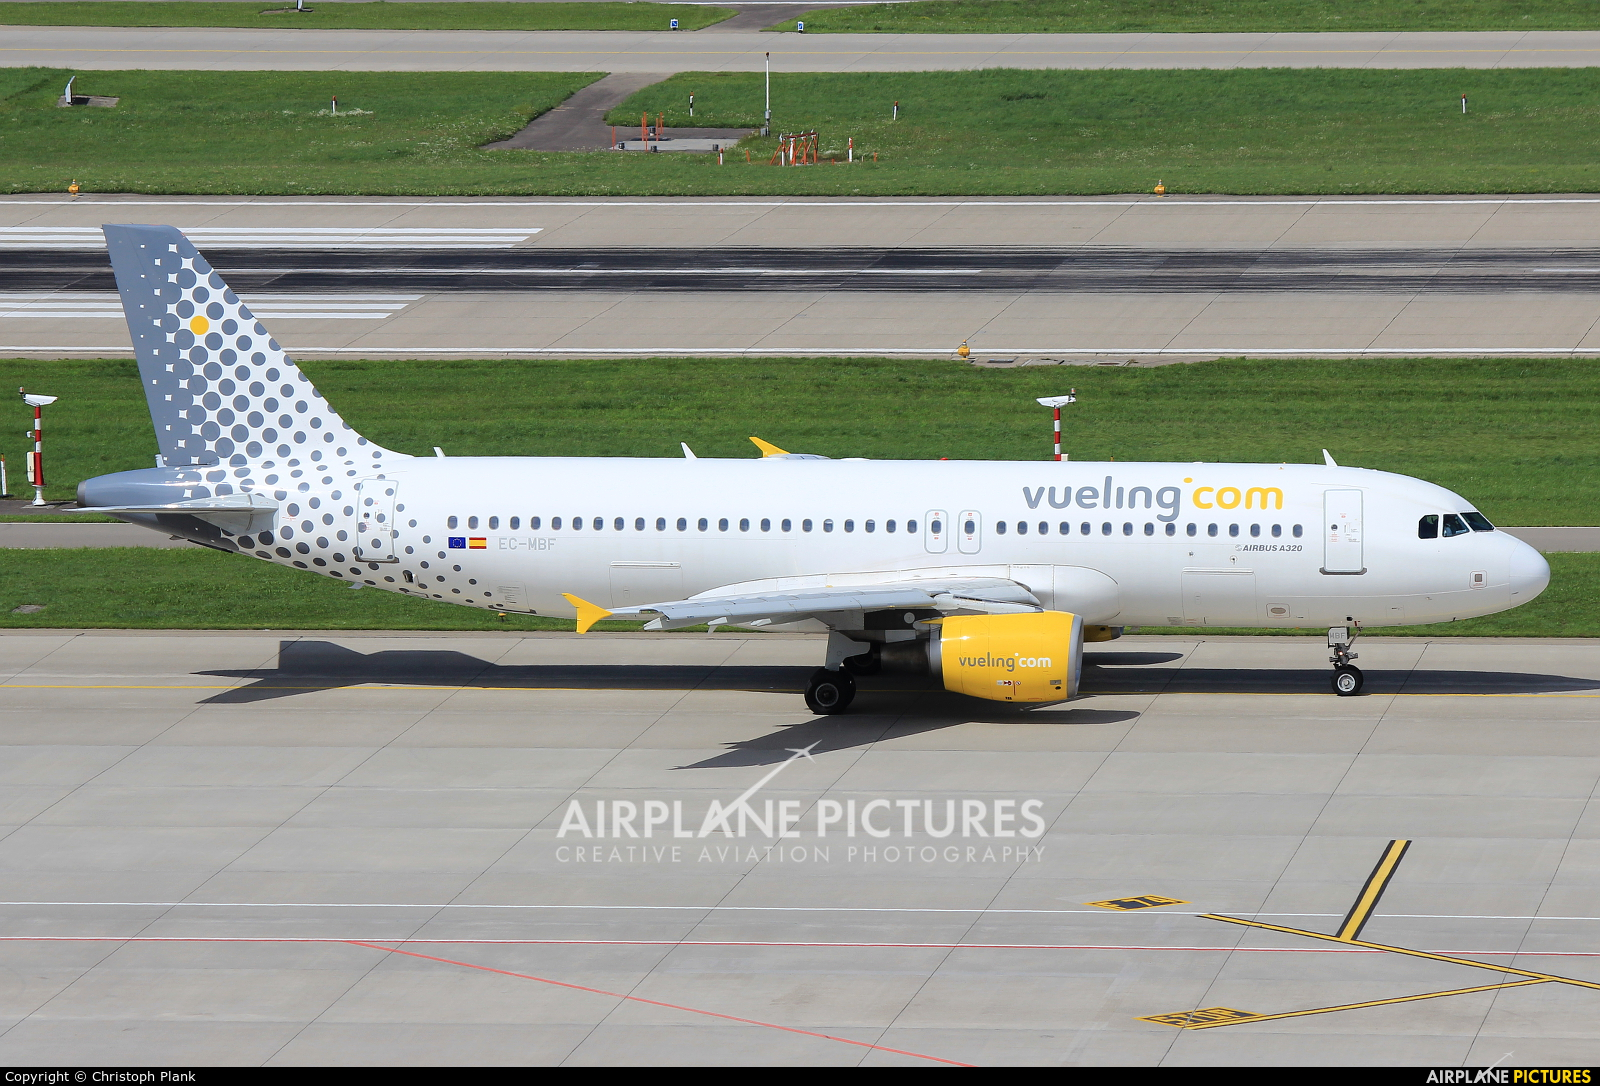 Vueling Airlines EC-MBF aircraft at Zurich